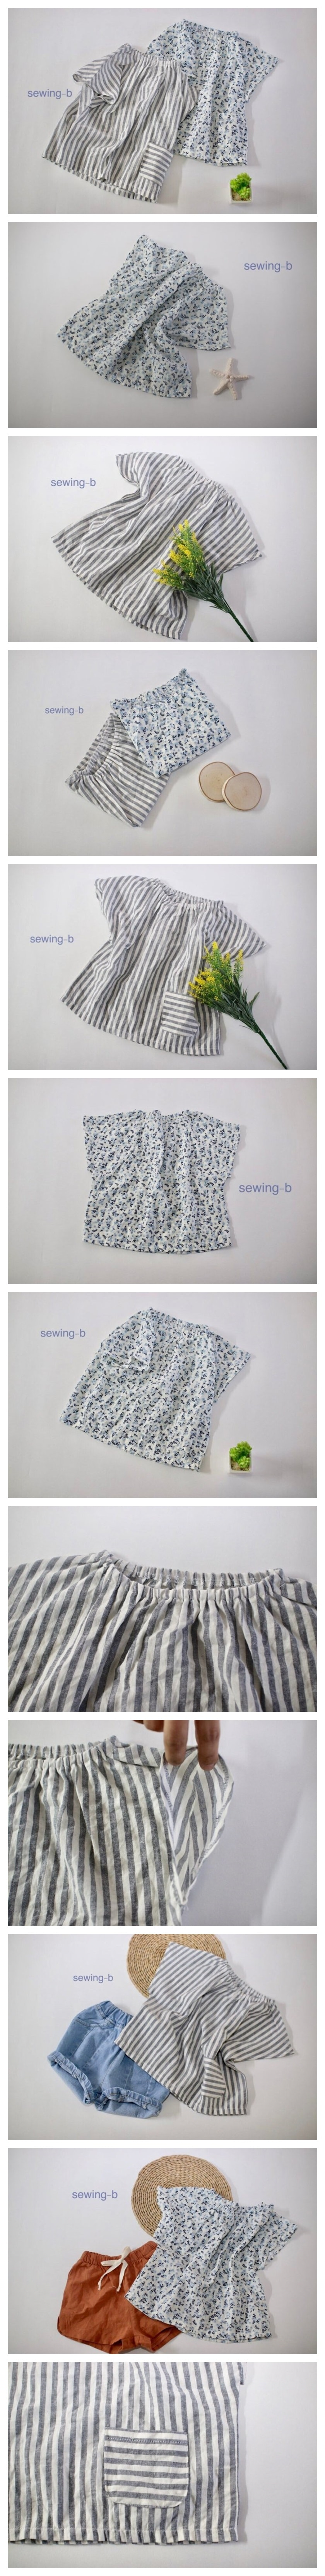 SEWING-B - Korean Children Fashion - #Kfashion4kids - Carrot Blouse